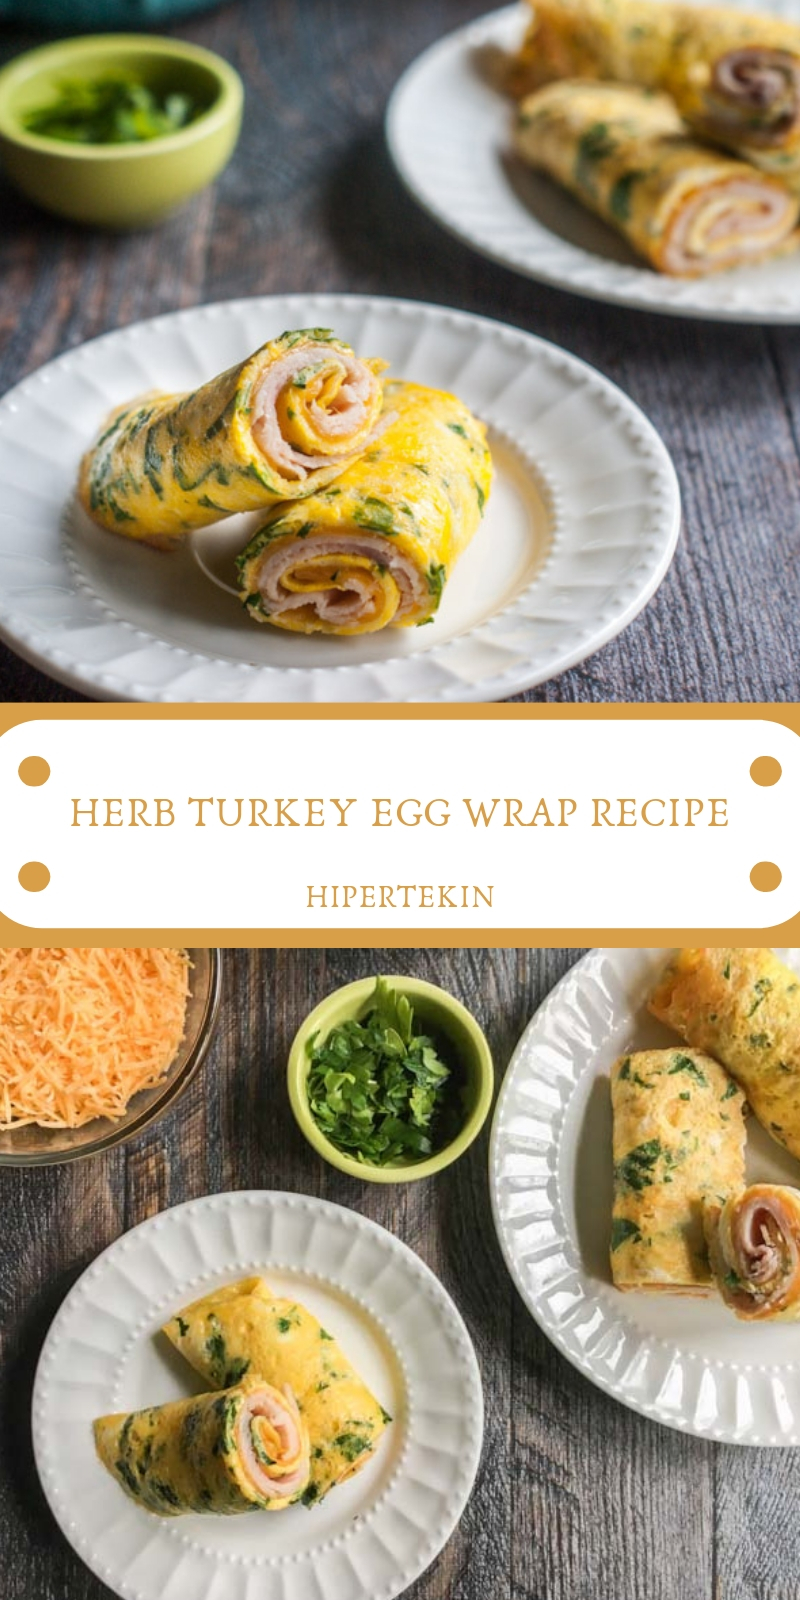 HERB TURKEY EGG WRAP RECIPE